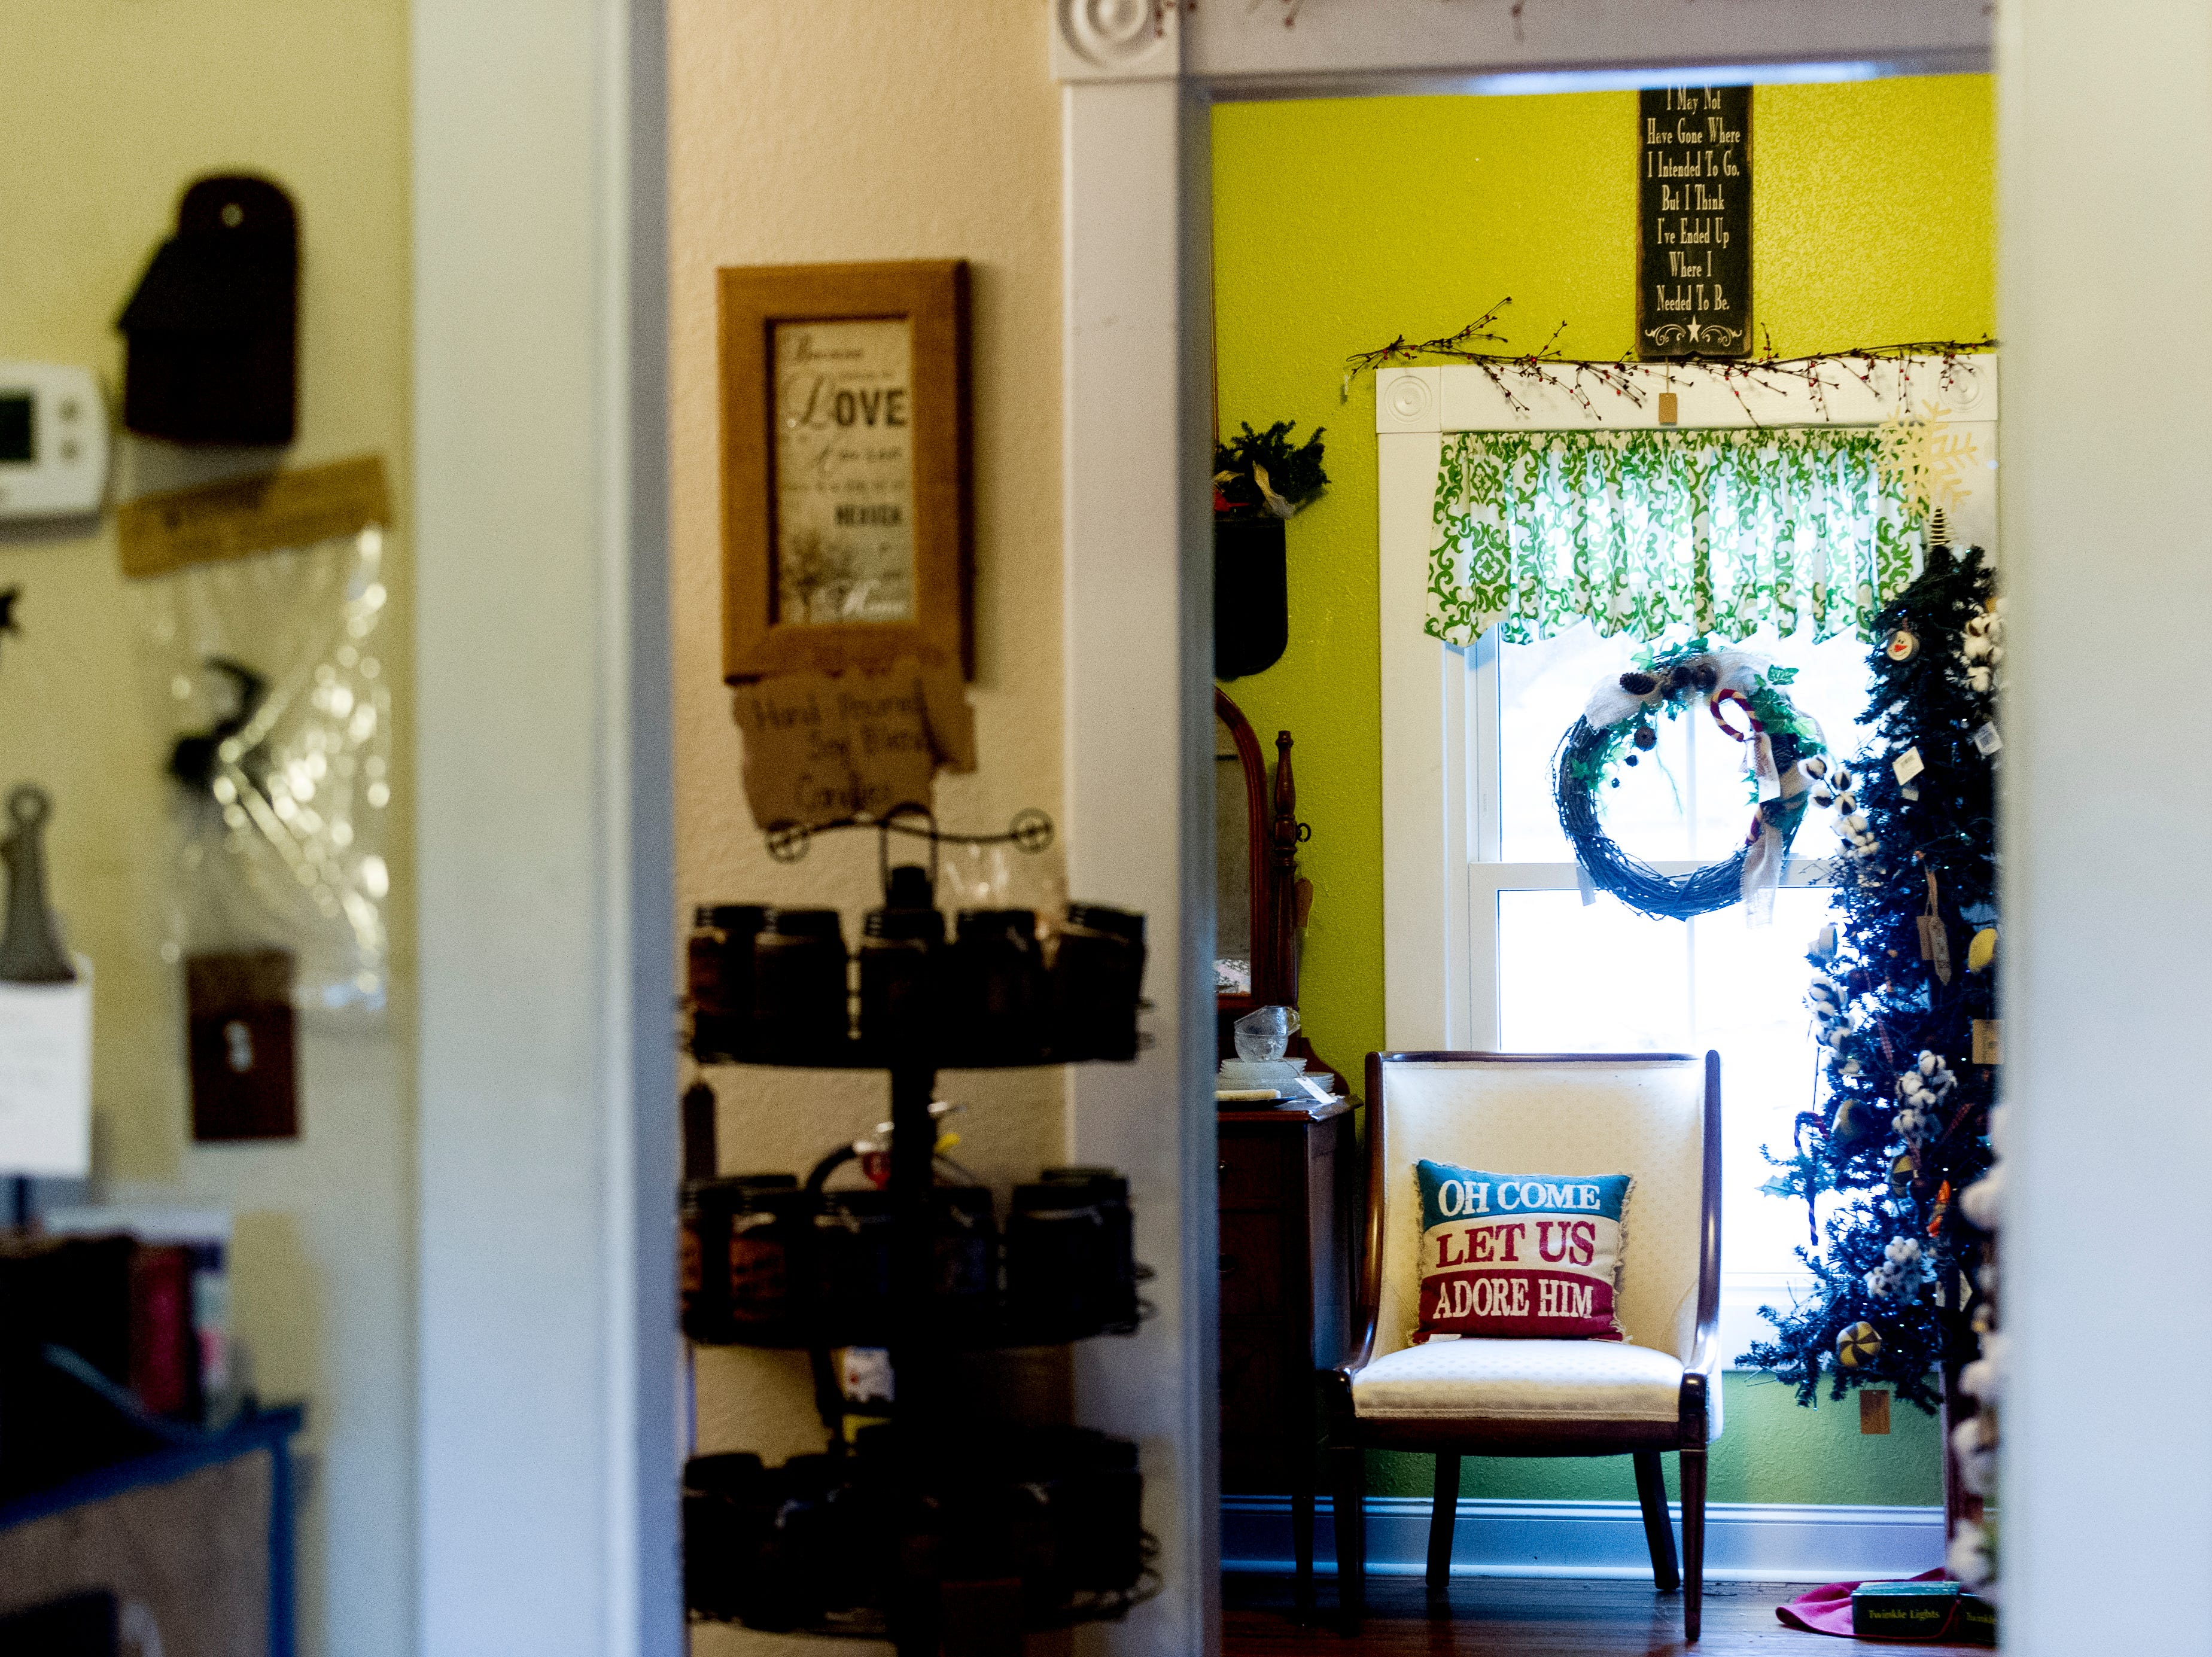 A view of the upstairs gift shop at The Front Porch Restaurant in Powell, Tennessee on Saturday, December 29, 2018. For five years, owner Bart Elkins has worked to revive that experience of the front porch being used as the focus for family and friends.